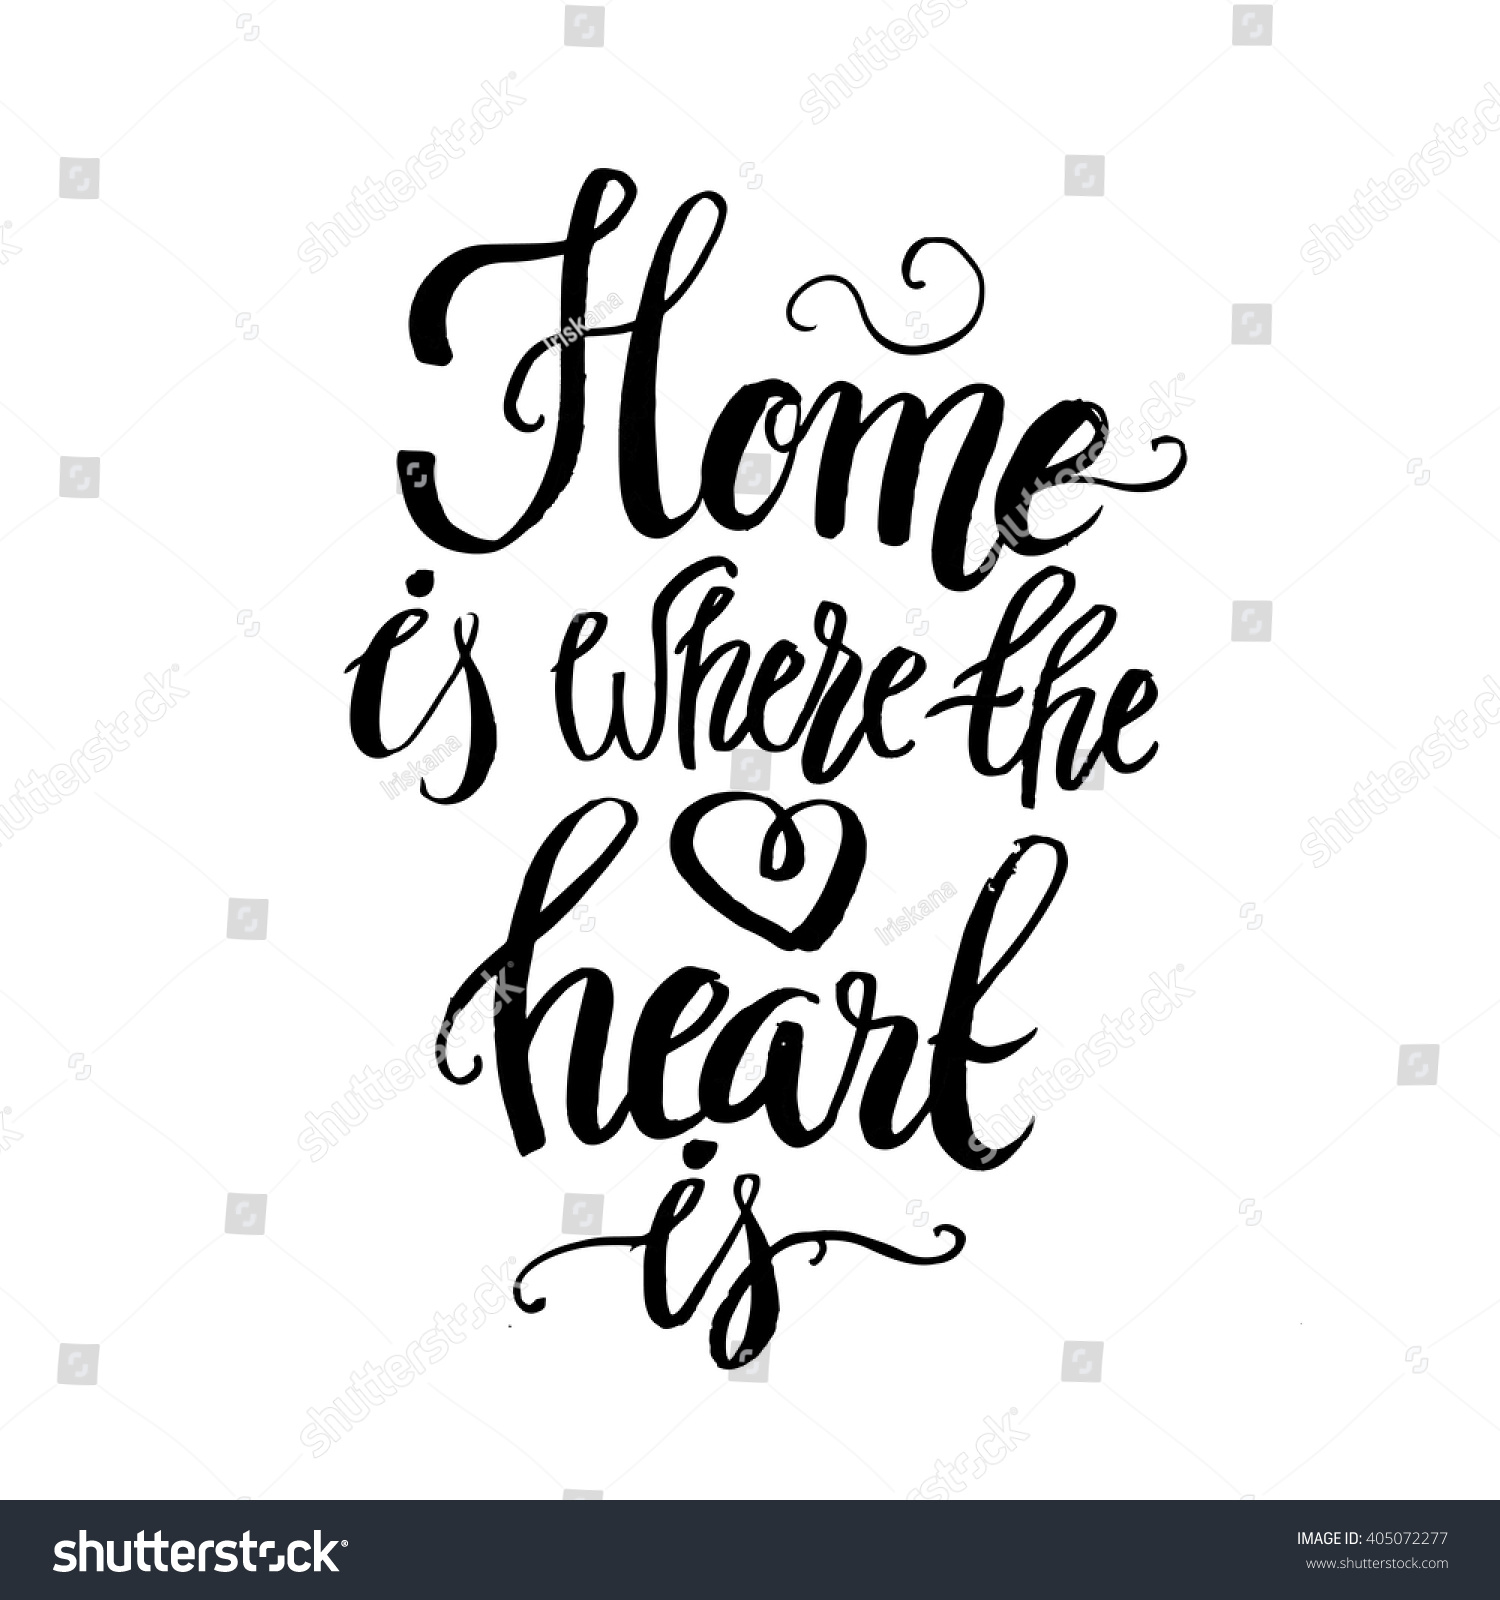 Housewarming Greetings Quotes Image collections - Greeting Card Examples